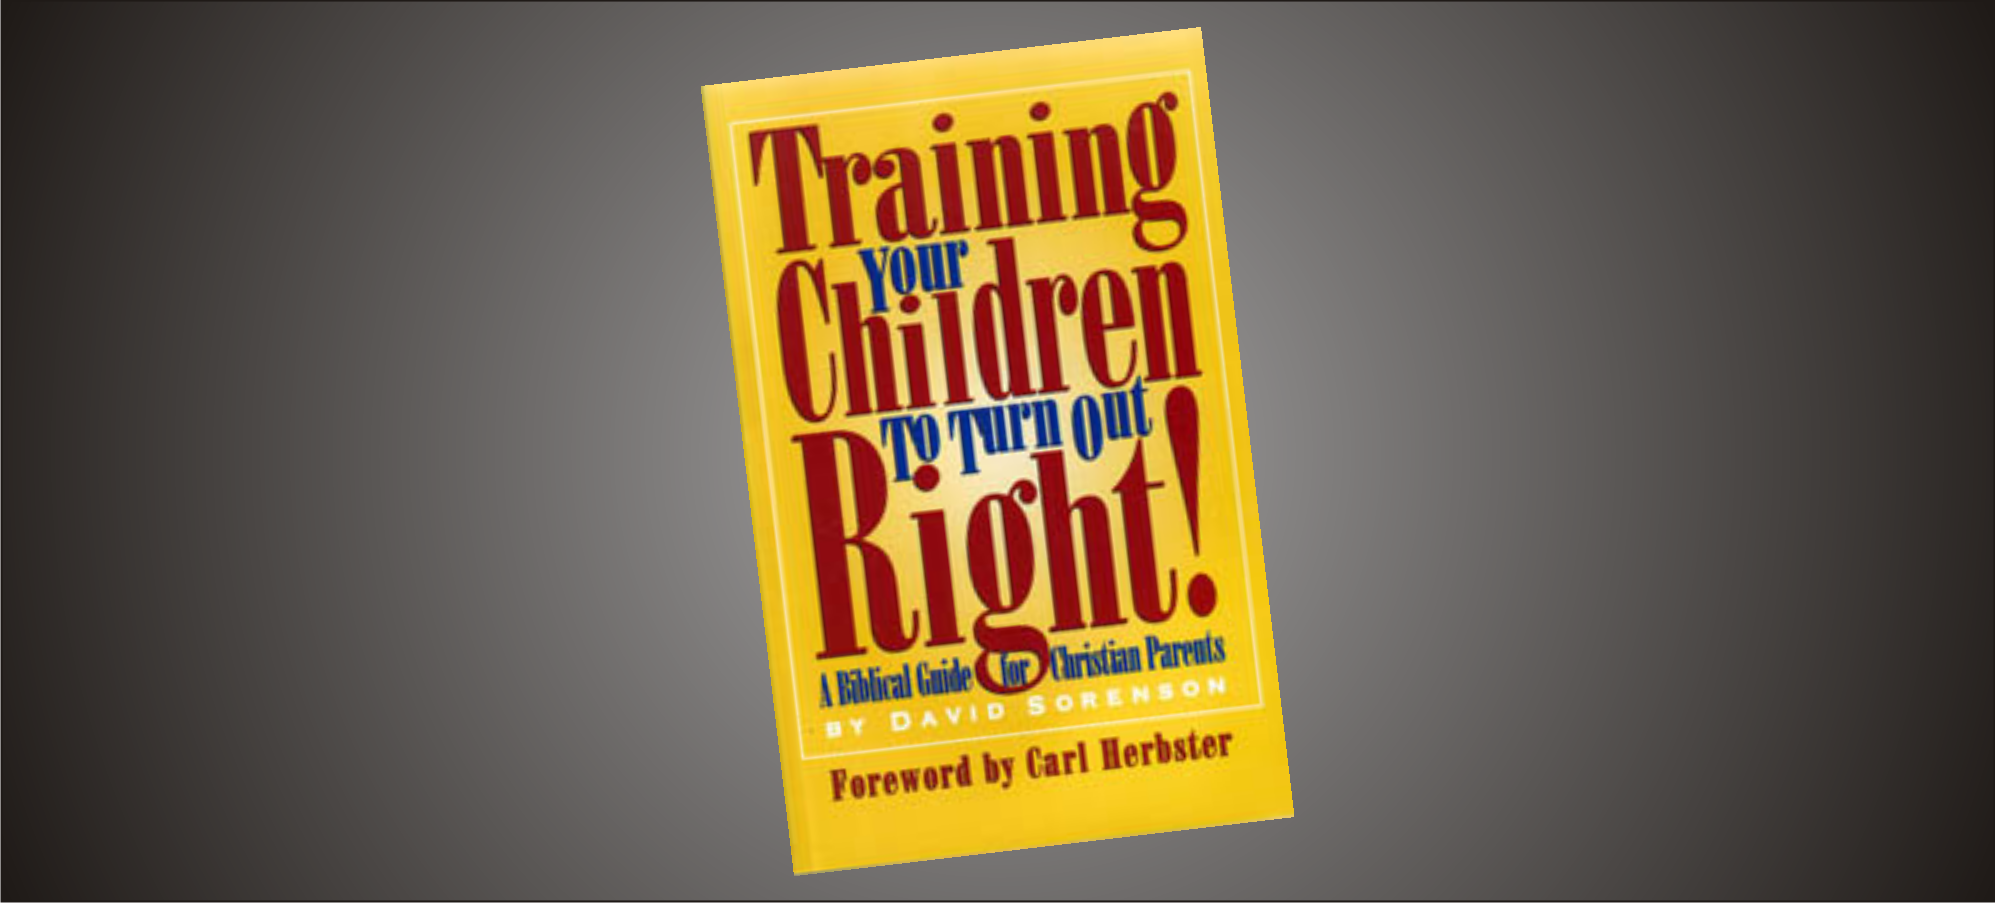 Training Your Children To Turn Out Right!